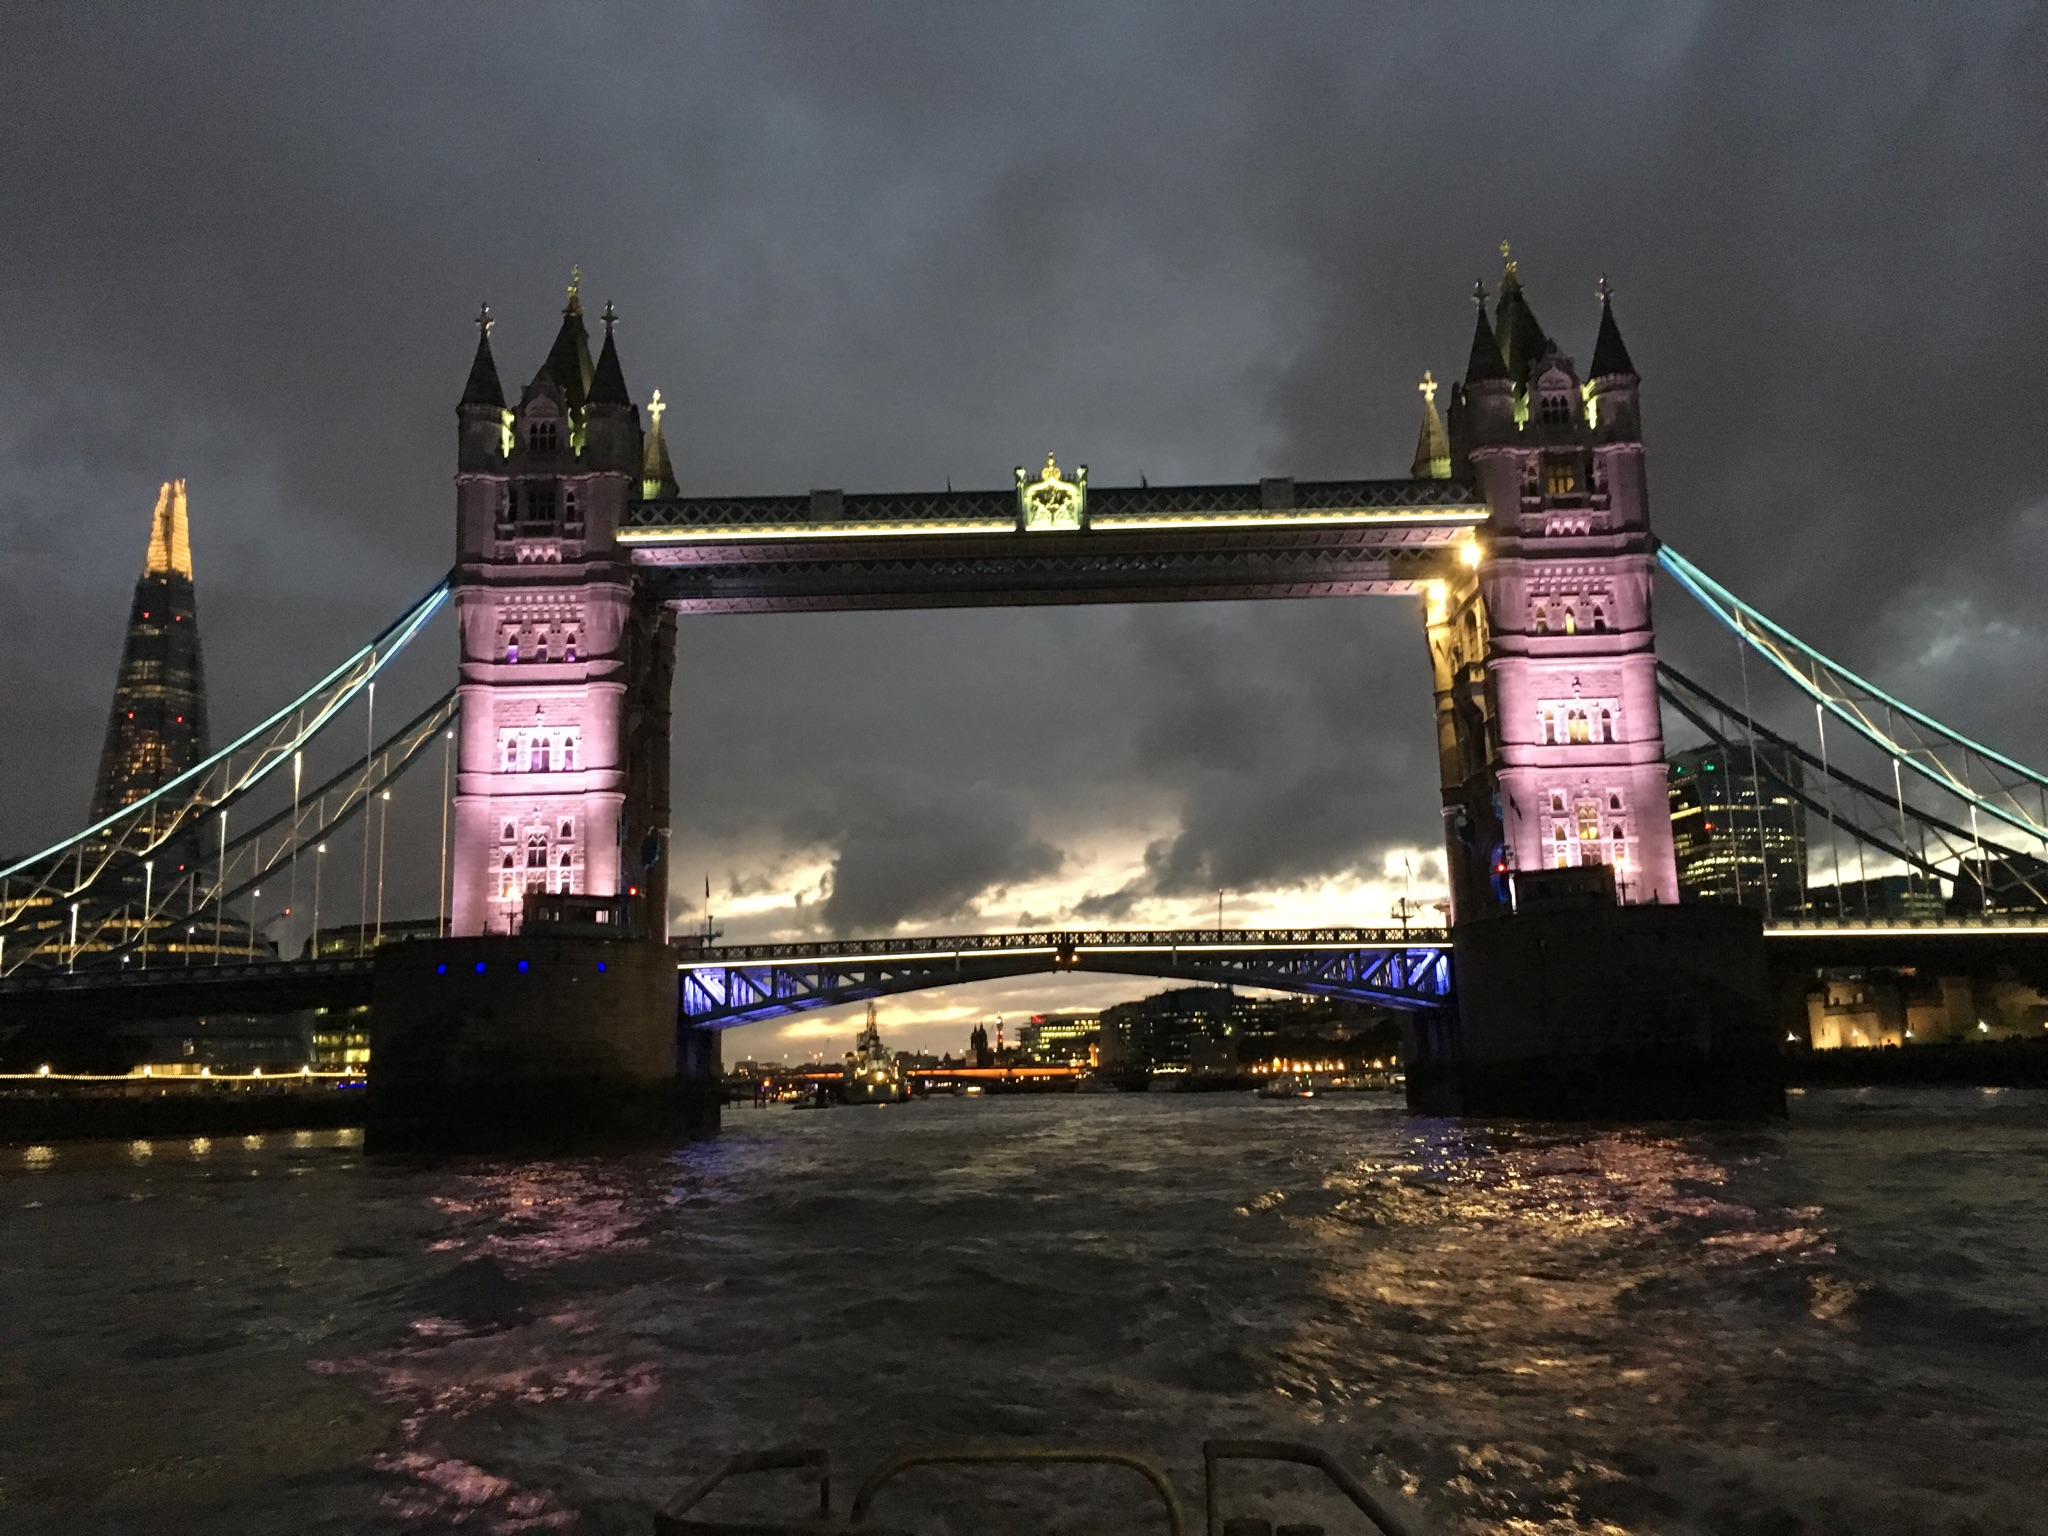 Tower Bridge at night while on the River Thames.